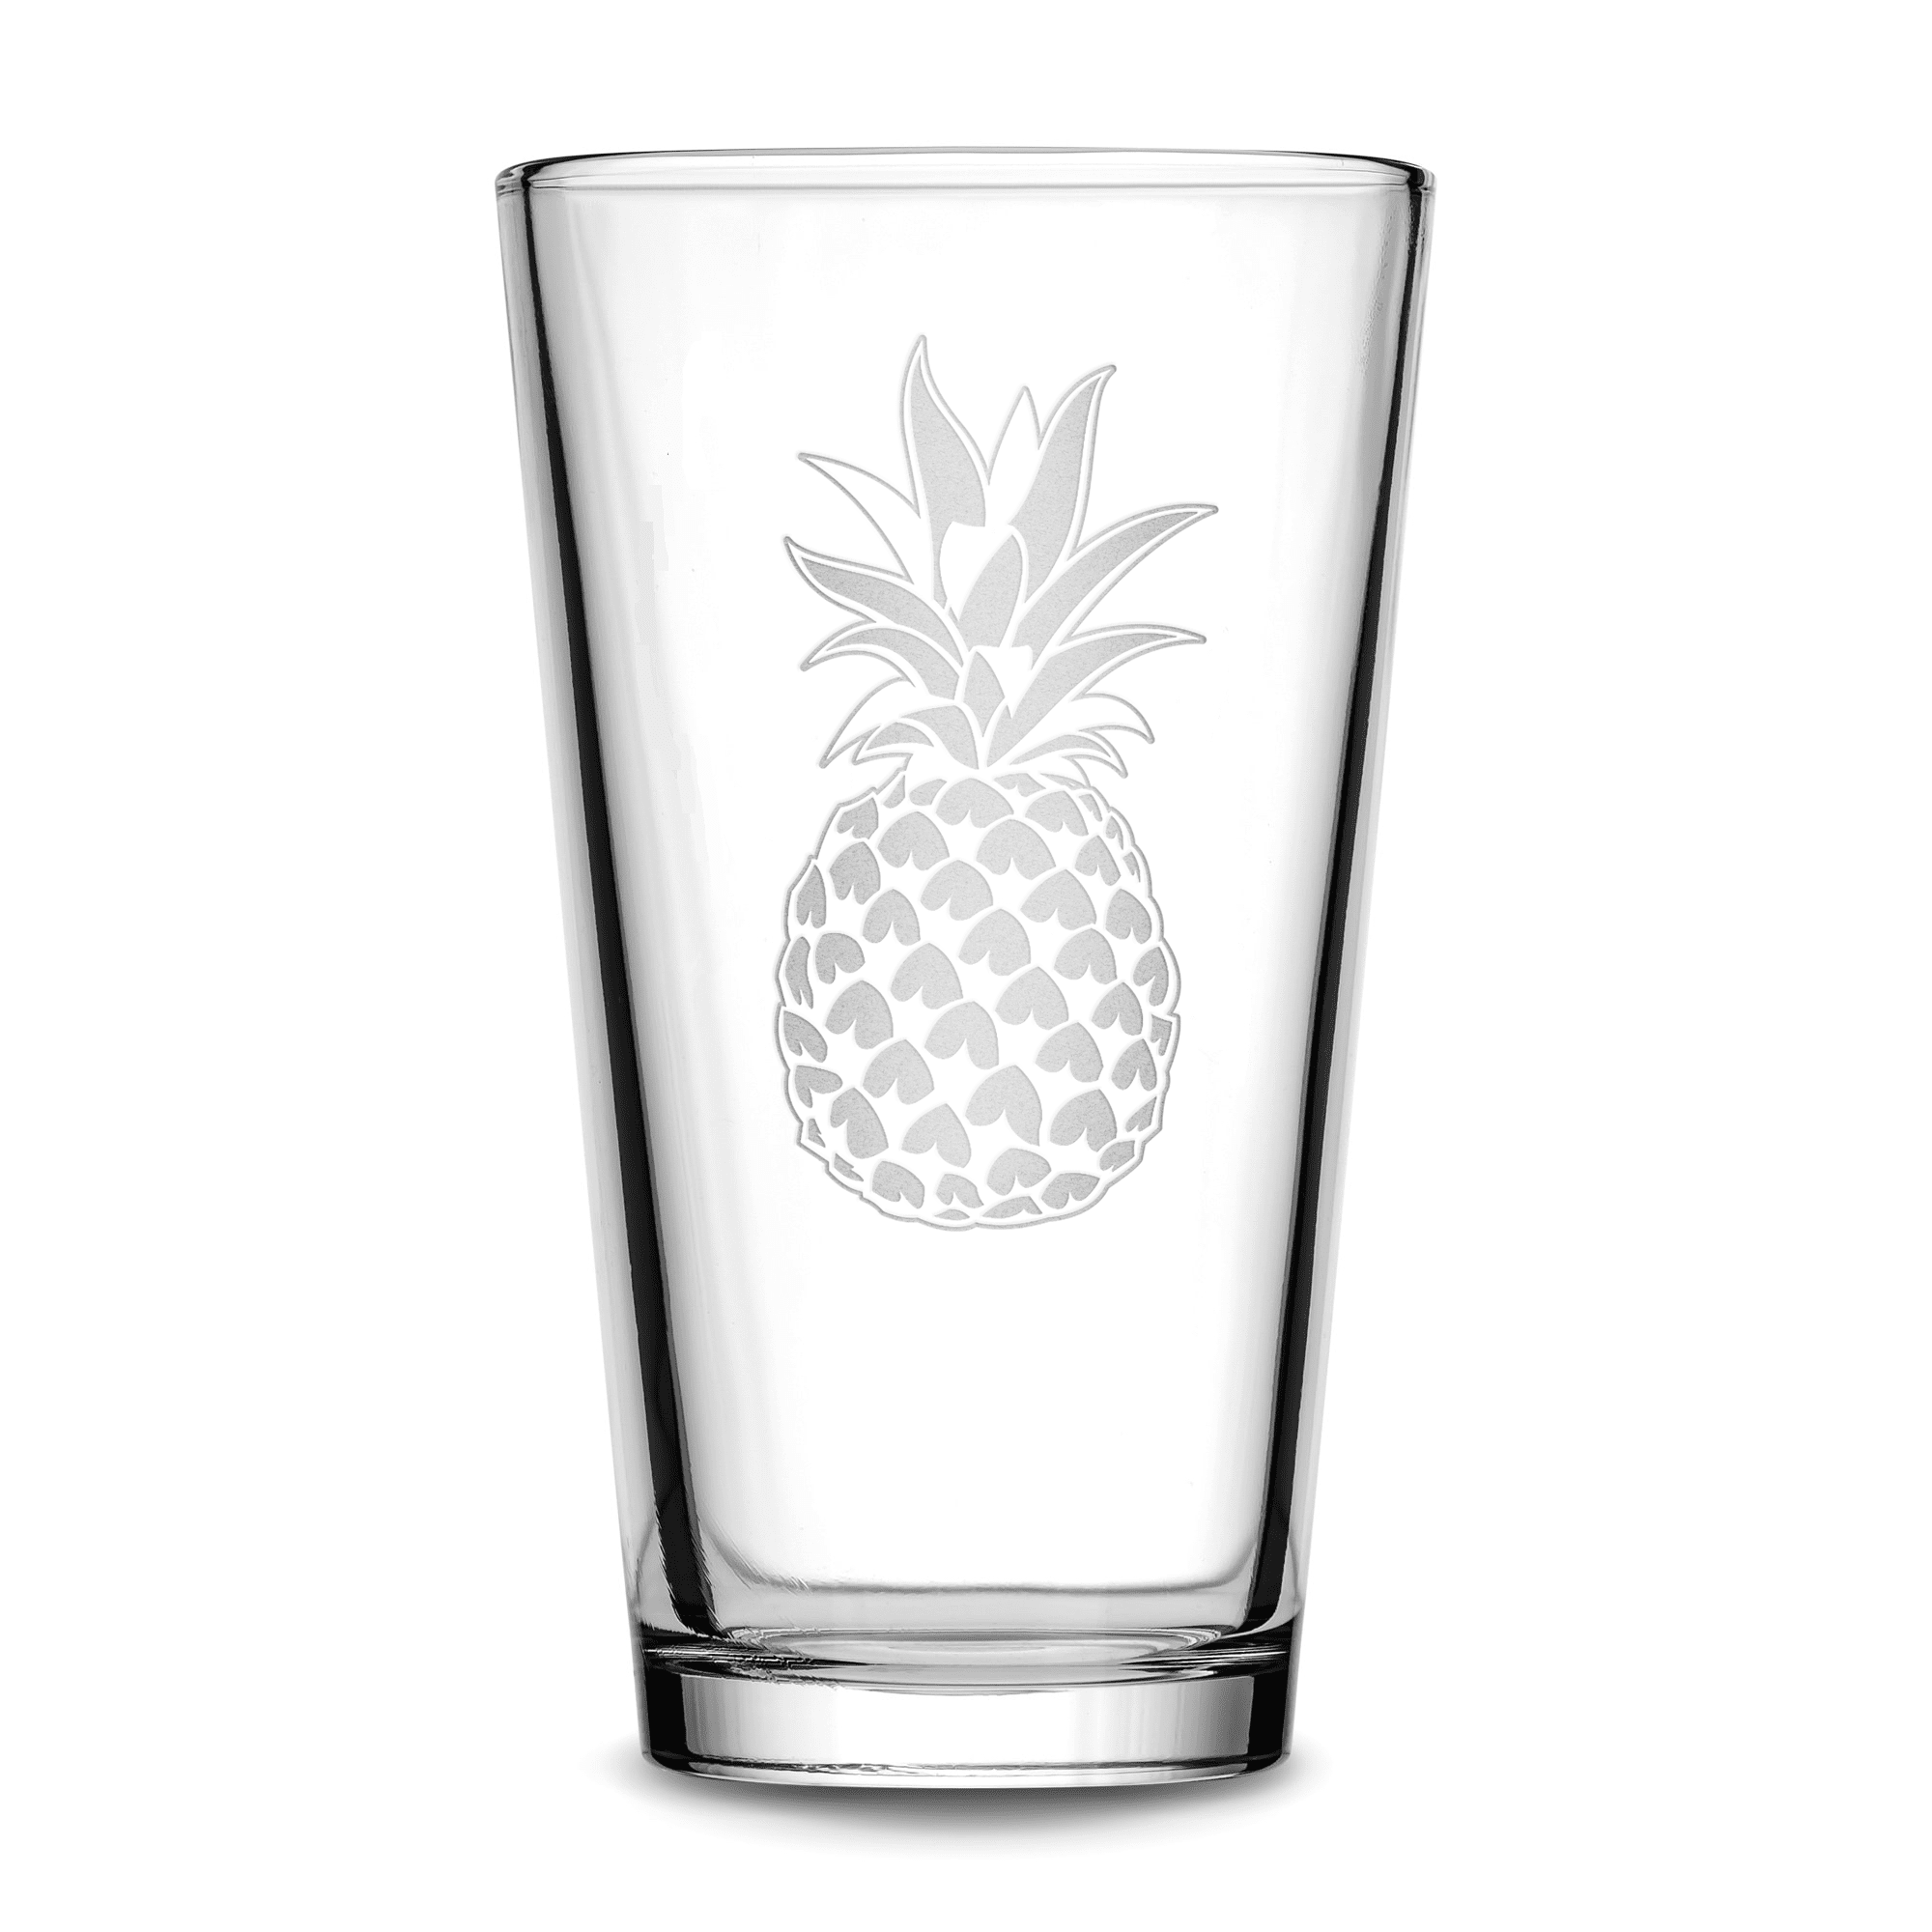 Pint Glass with Pineapple Design, Deep Etched by Integrity Bottles